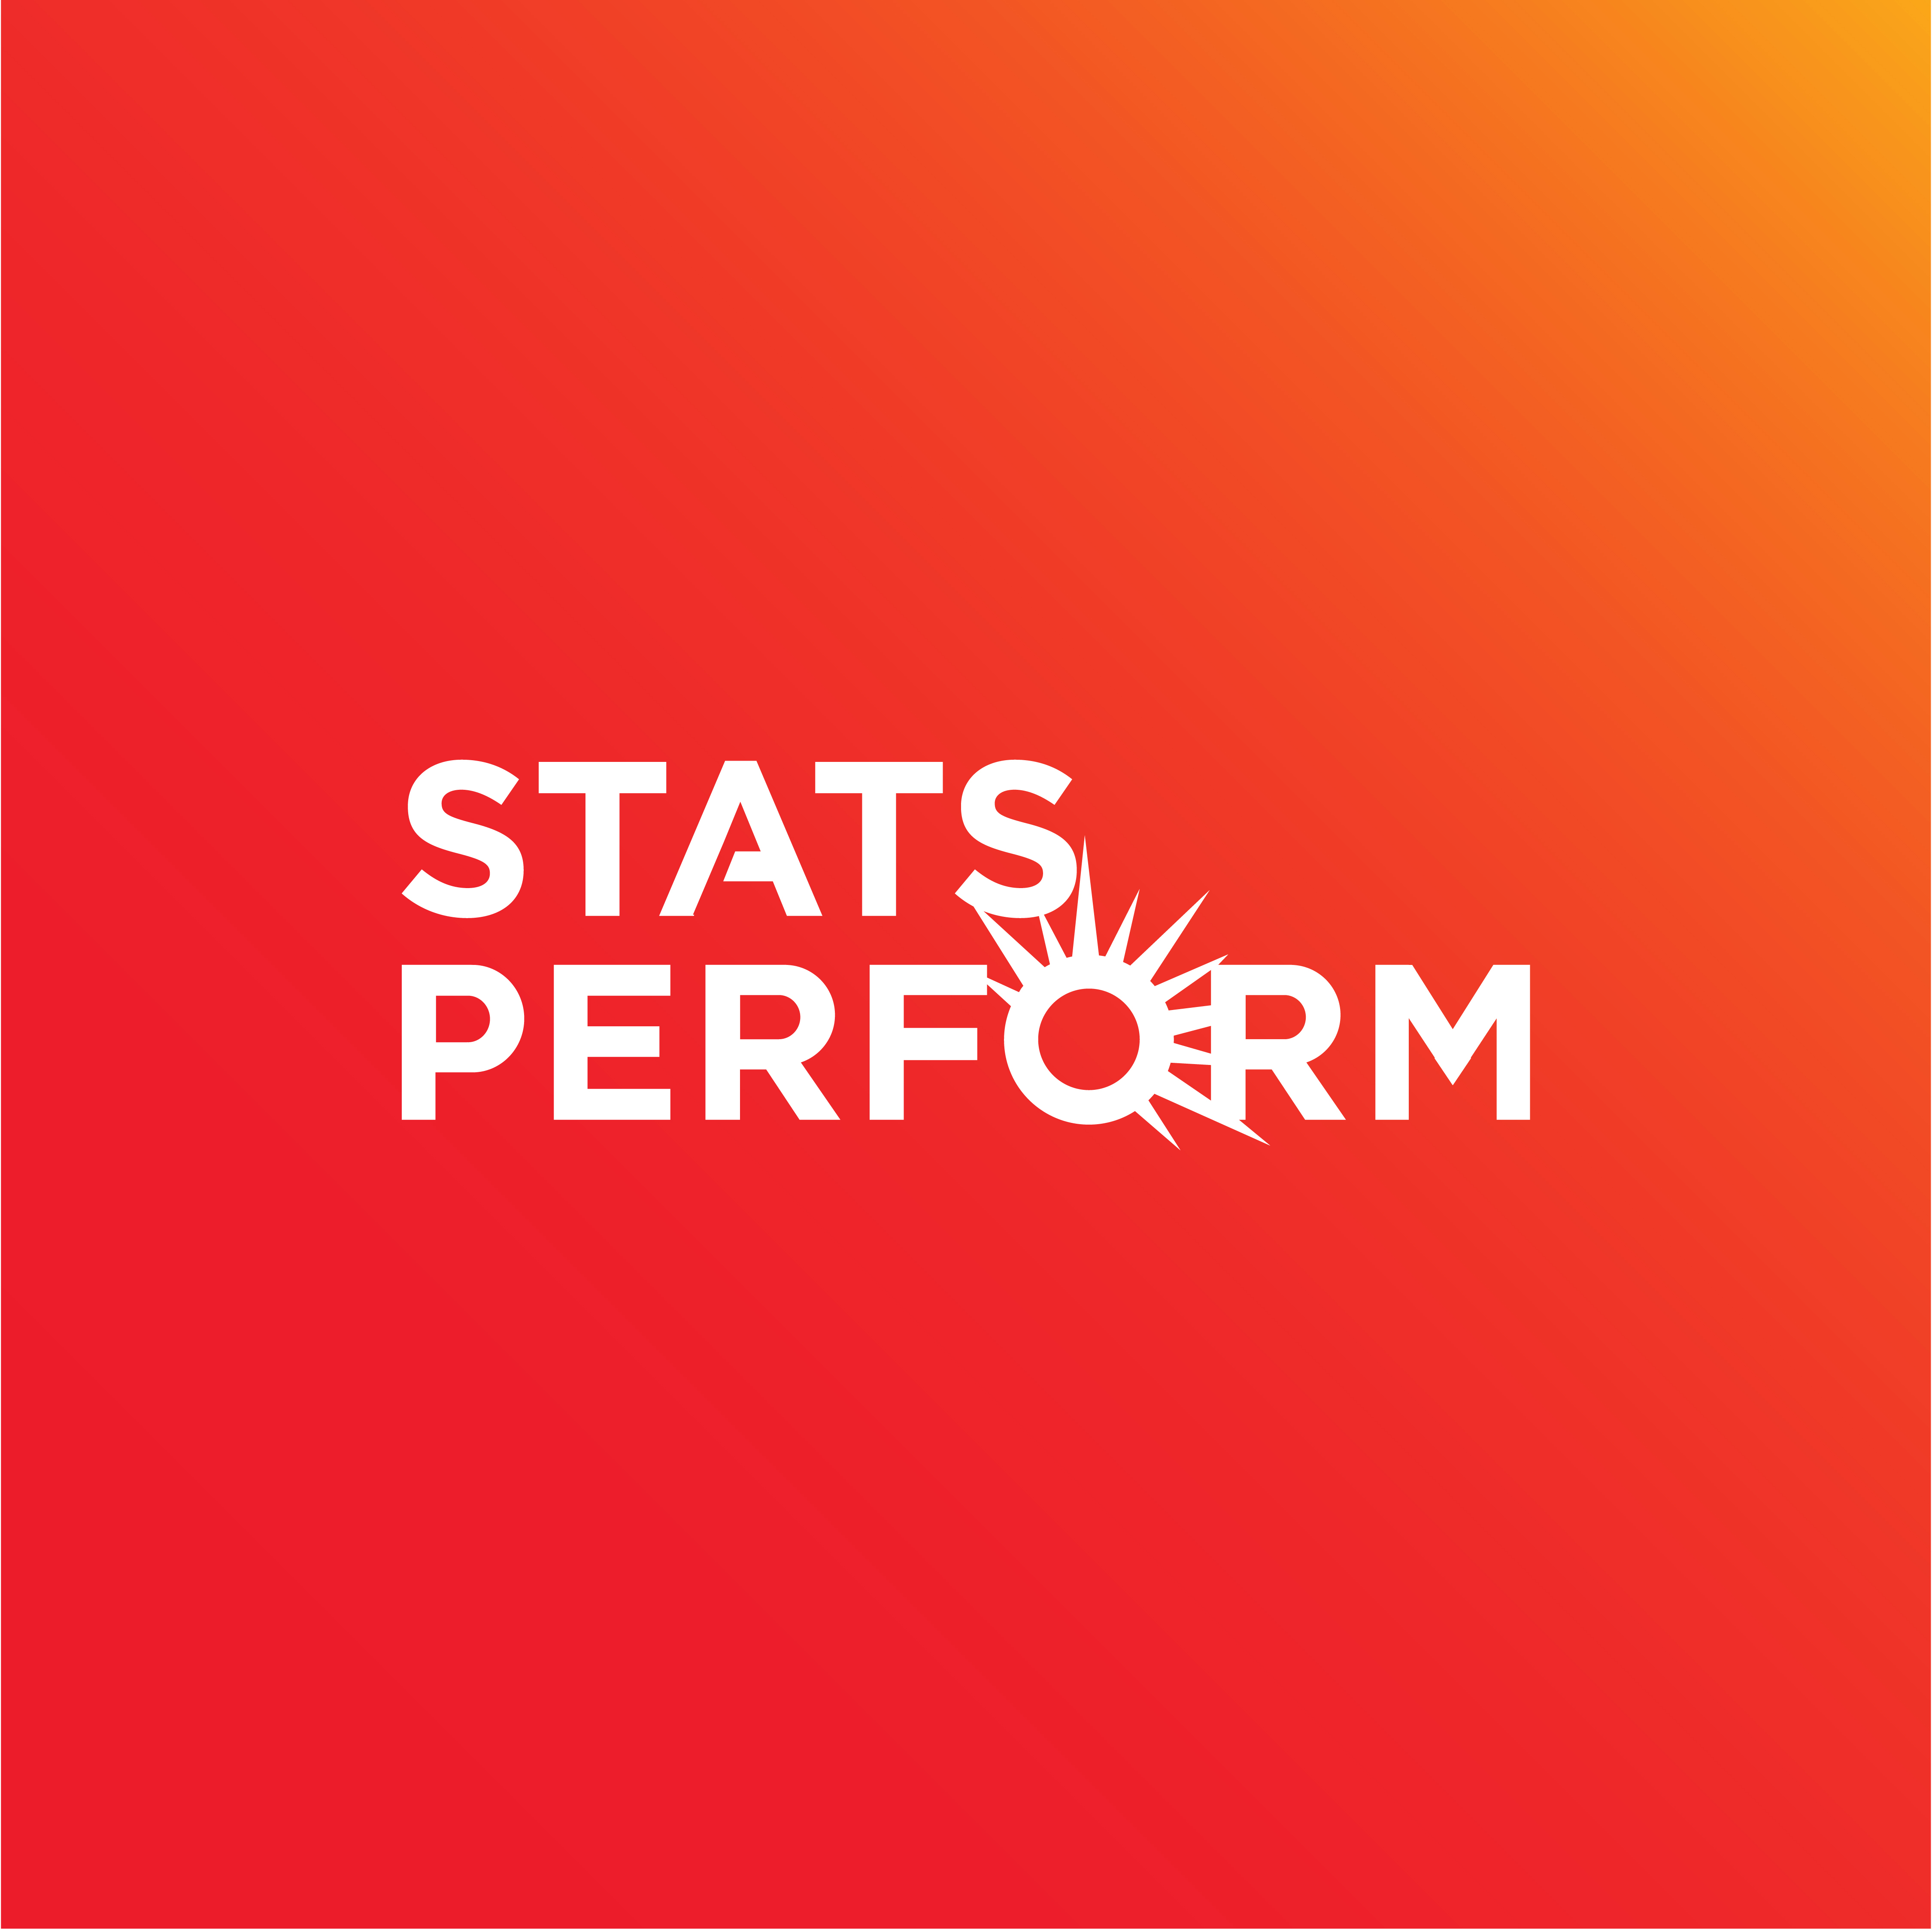 Stats Perform Chief Scientist and Senior Data Analyst to